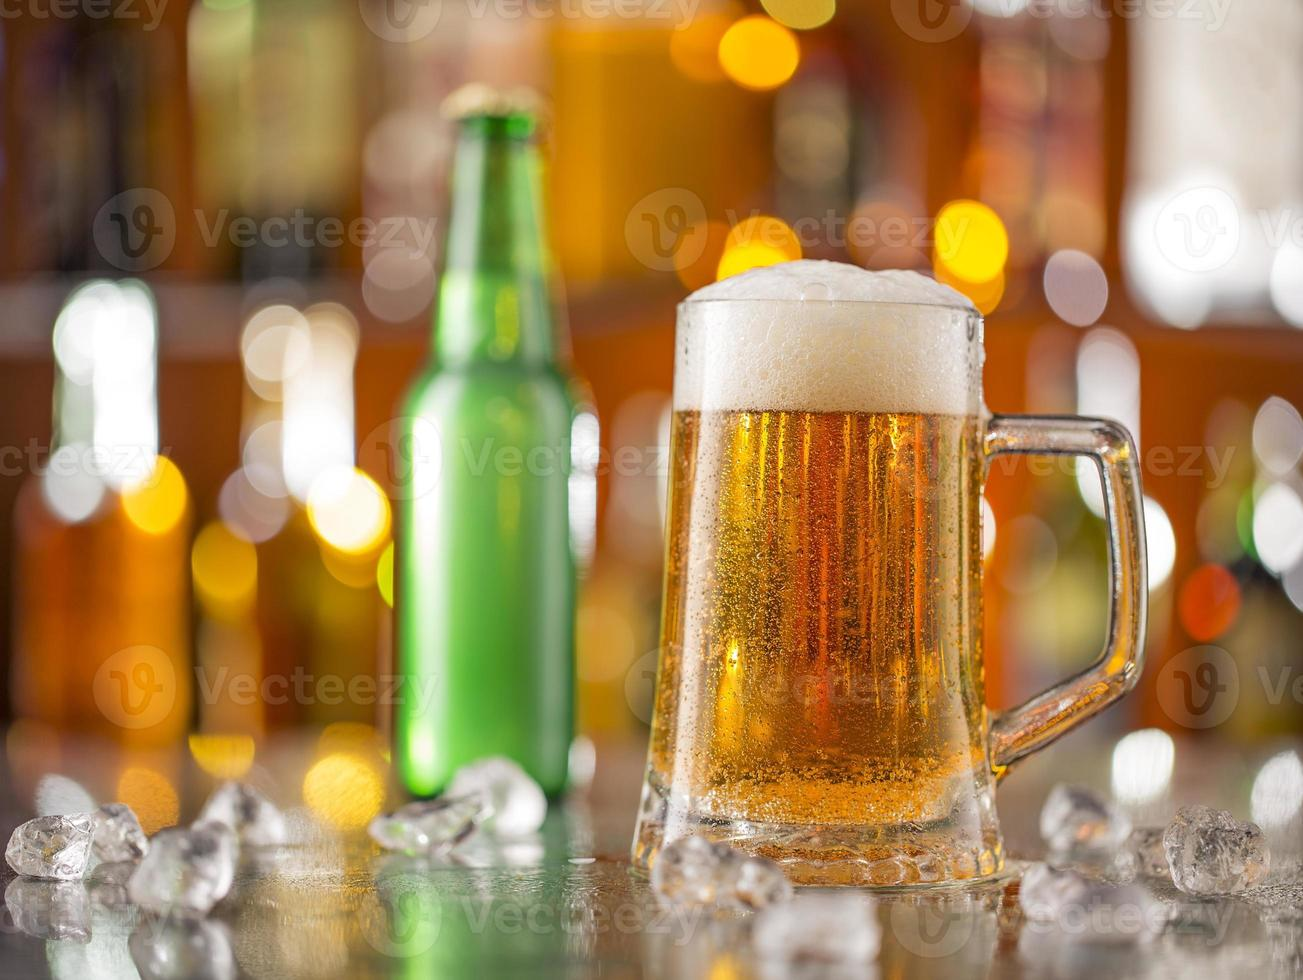 Bottle of beer with glass on bar desk photo